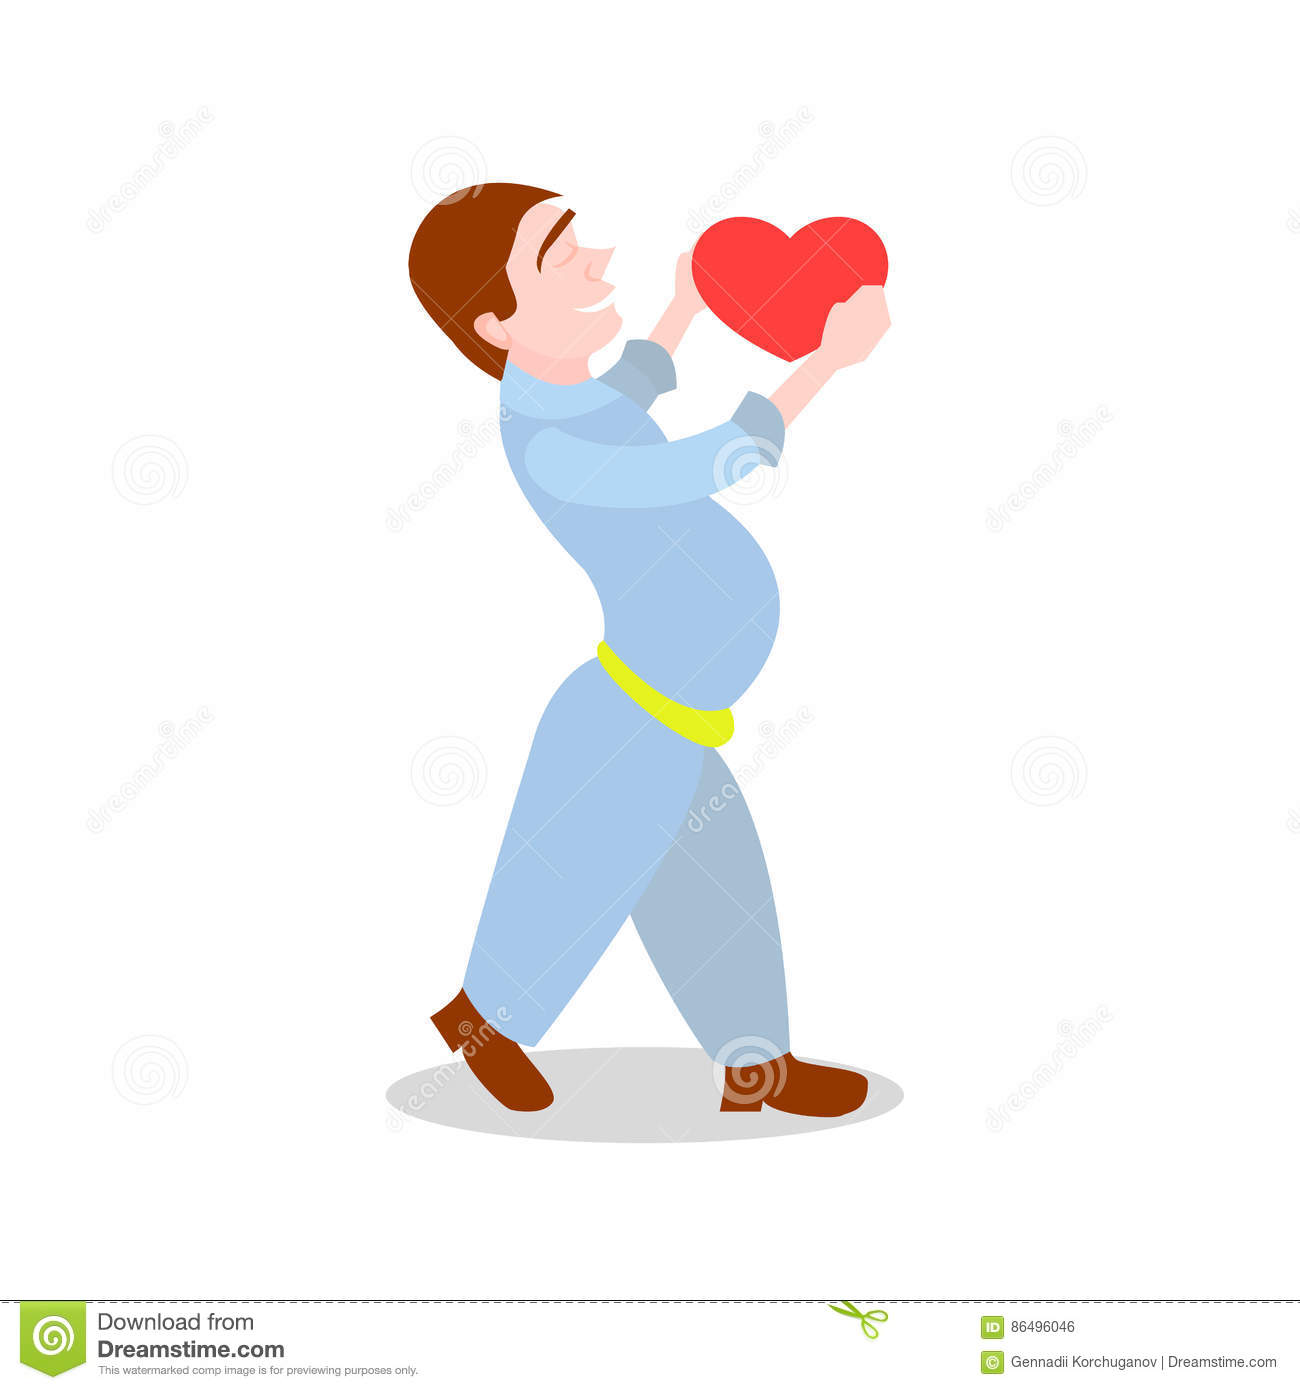 A boy giving a ball to a boy clipart. Heart in the style